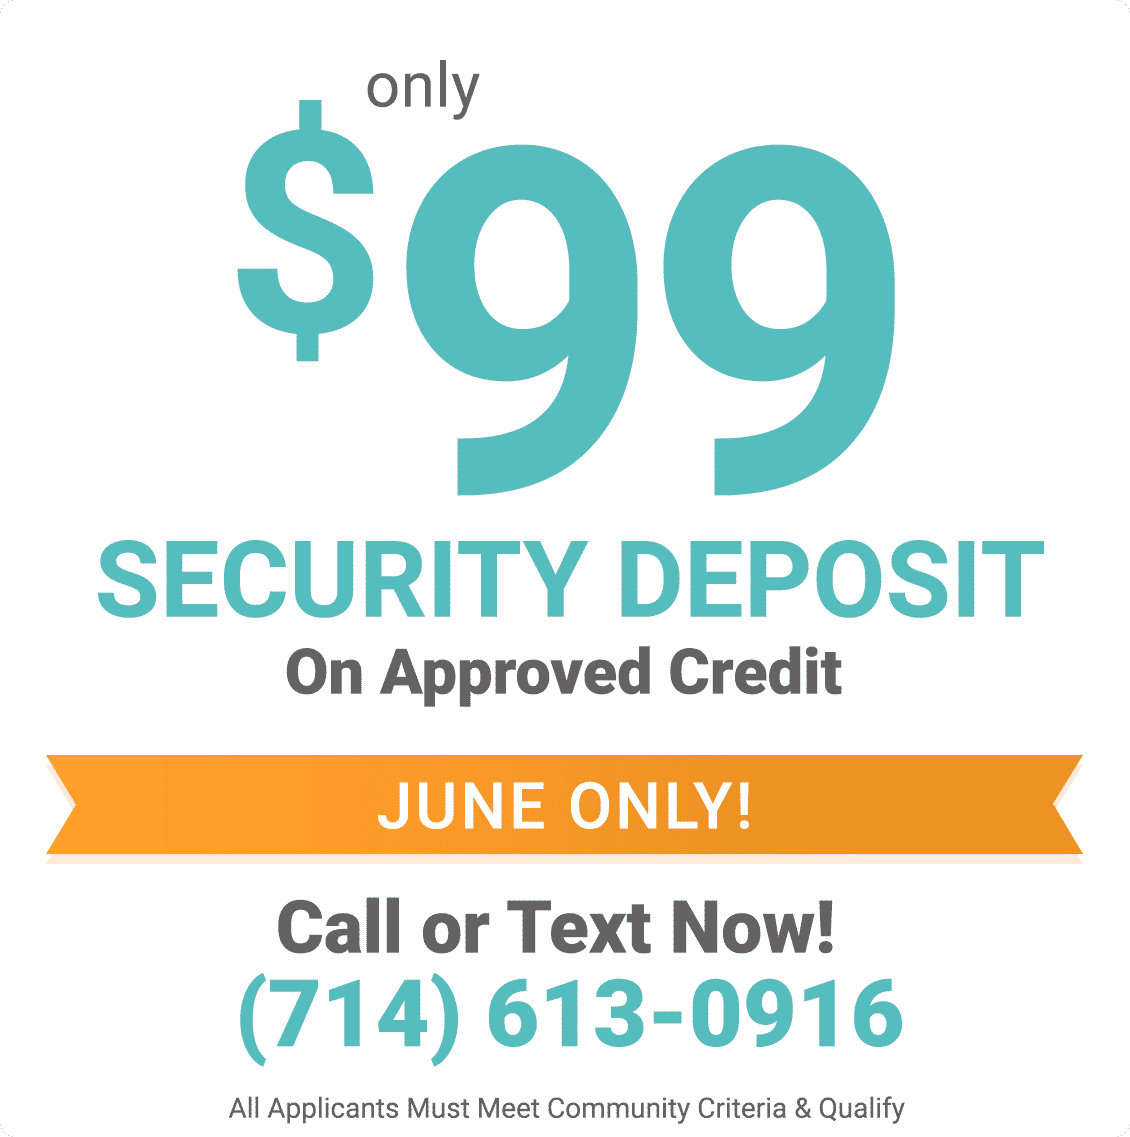 Only $99 security deposit on approved credit